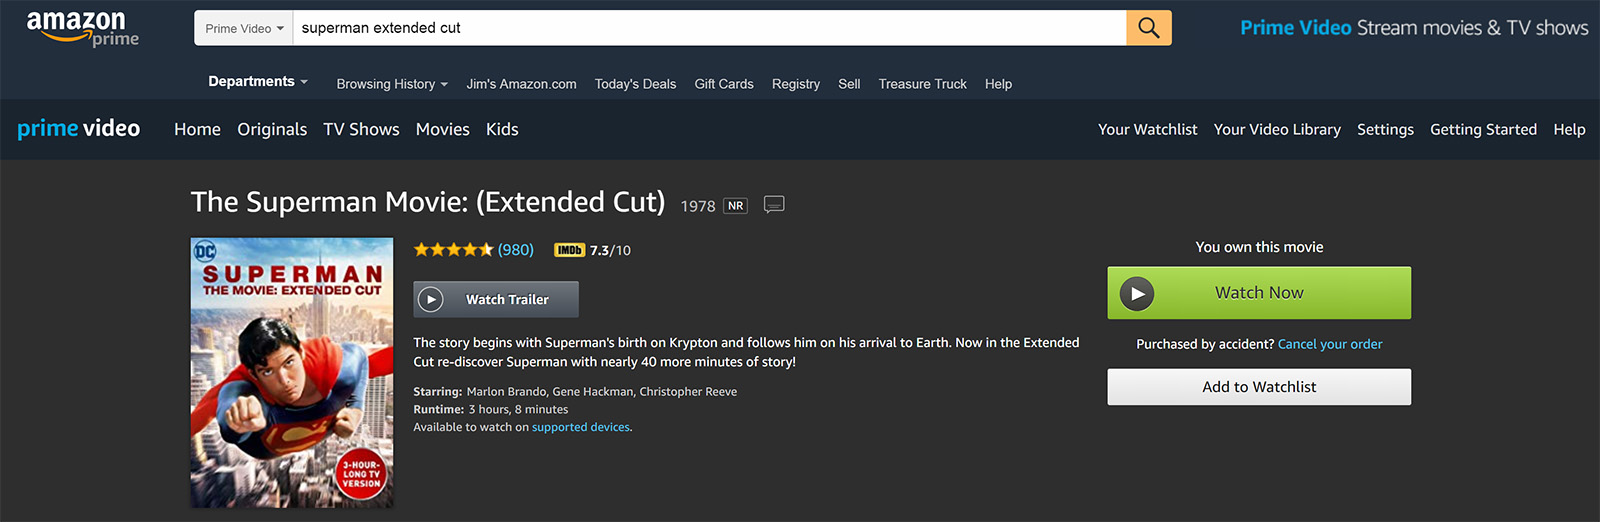 CW Amazon Prime Video STM Extended Cut